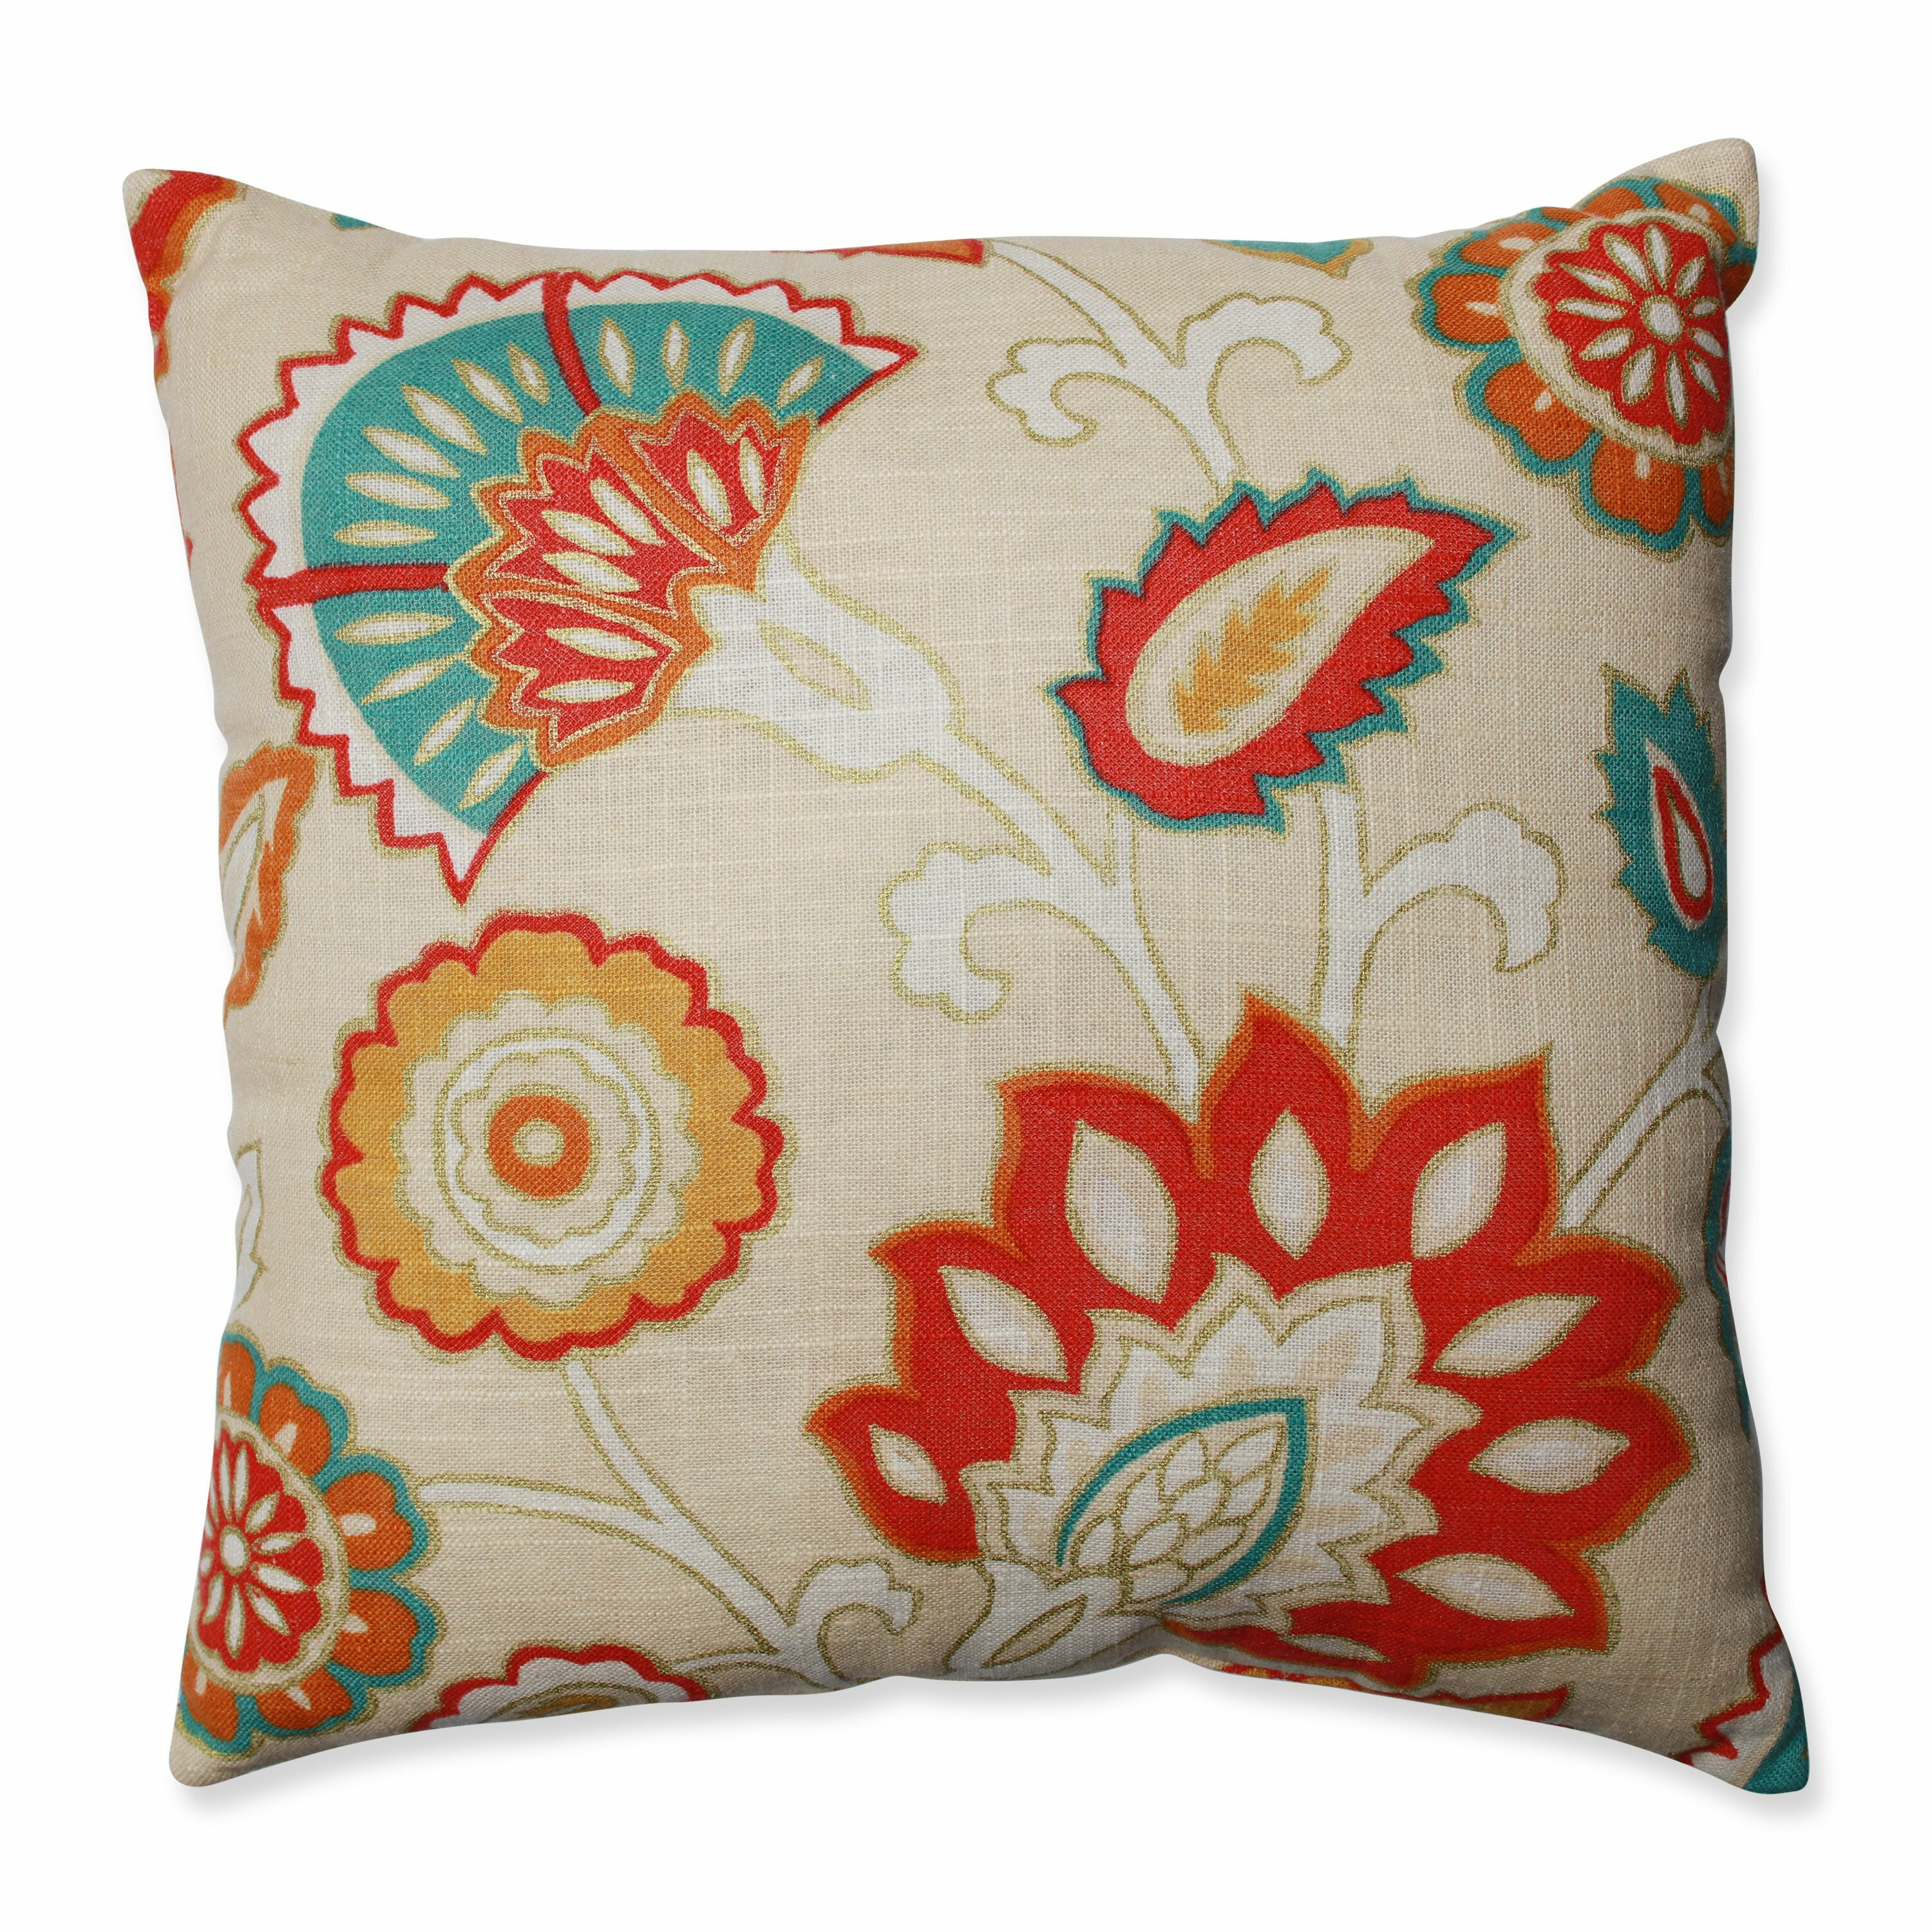 Wayfair Teal Throw Pillows : Pillow Perfect Myanmar Fiesta Throw Pillow & Reviews Wayfair